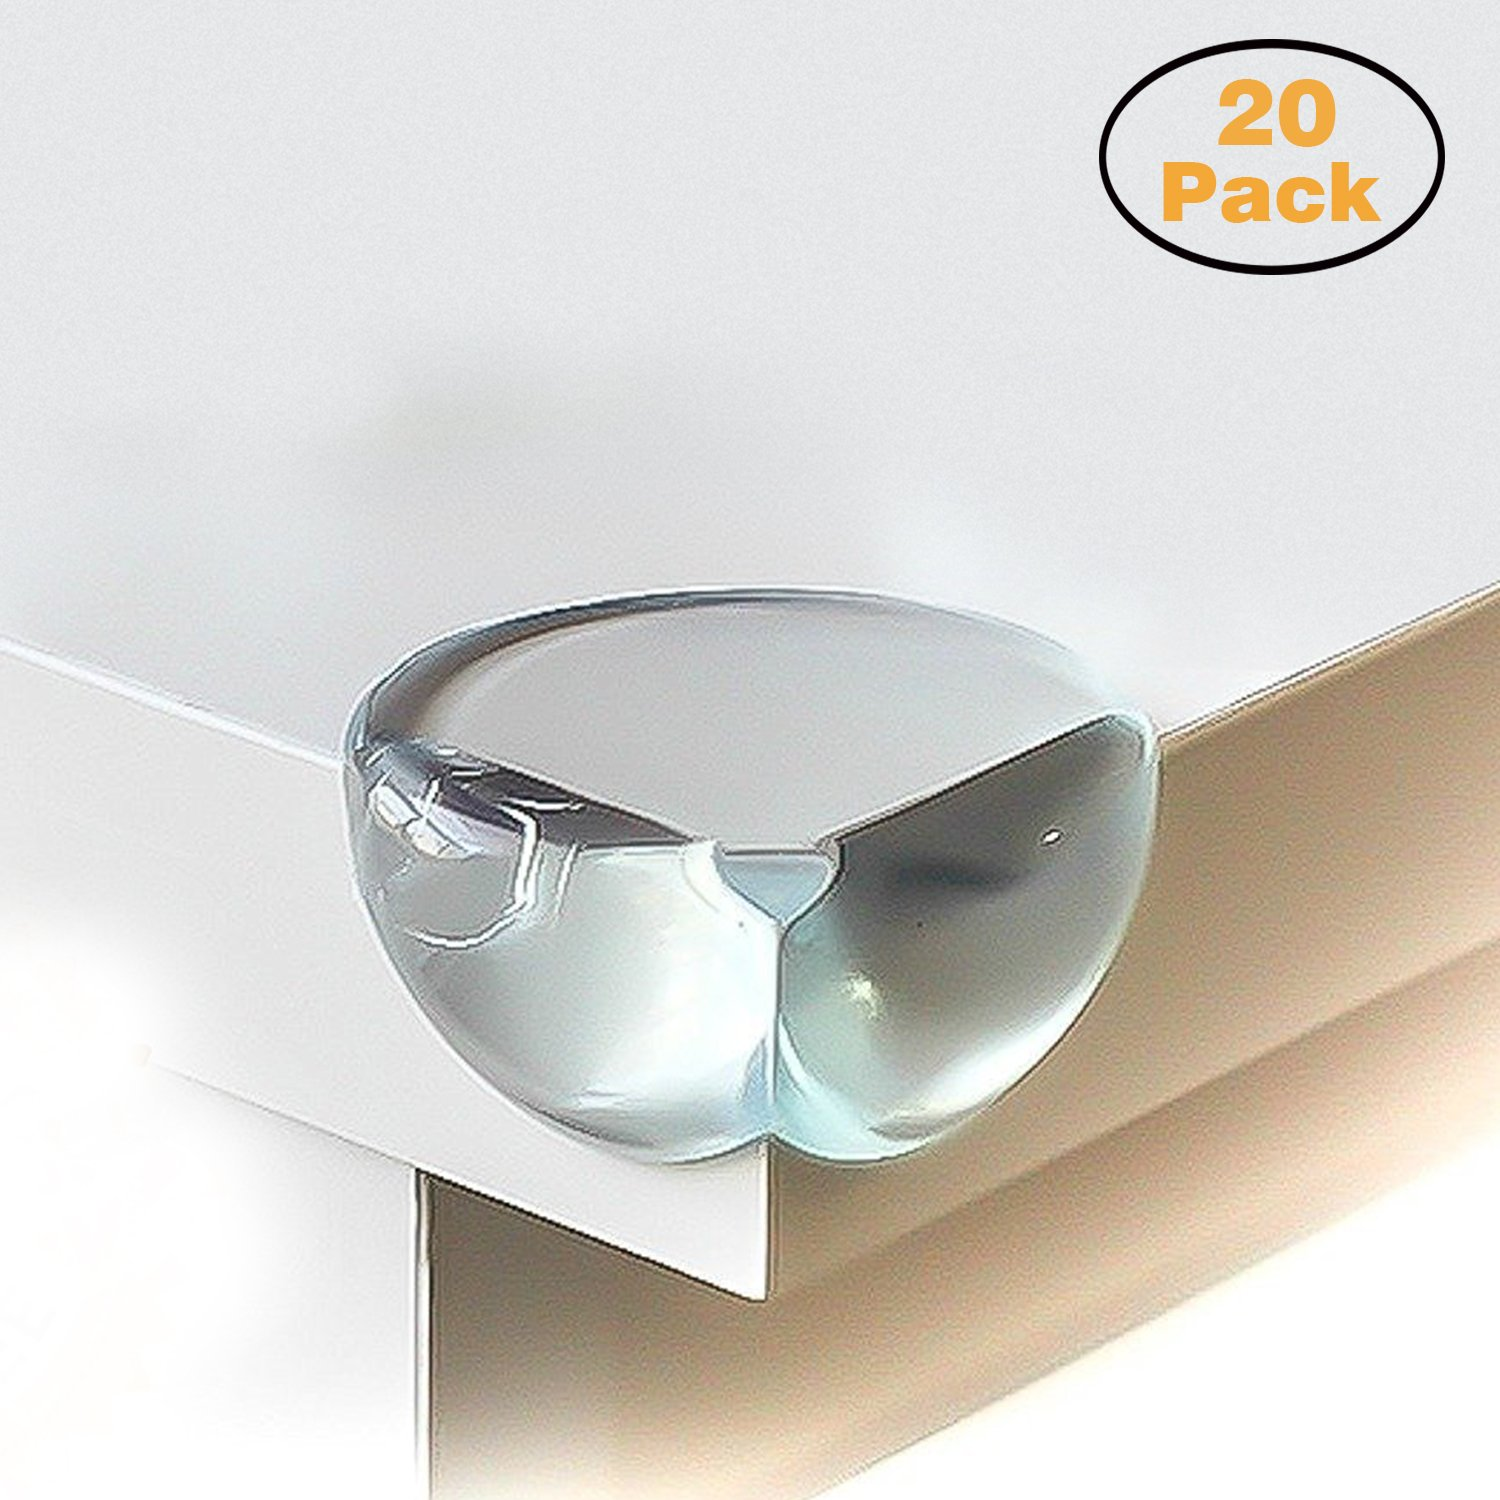 CALISH Safety Corner Protectors Guards (20pcs - Large - Clear) Table Corner Guards for Child and Baby, with 20pcs Strong Adhesive for Backup Use 18033429554